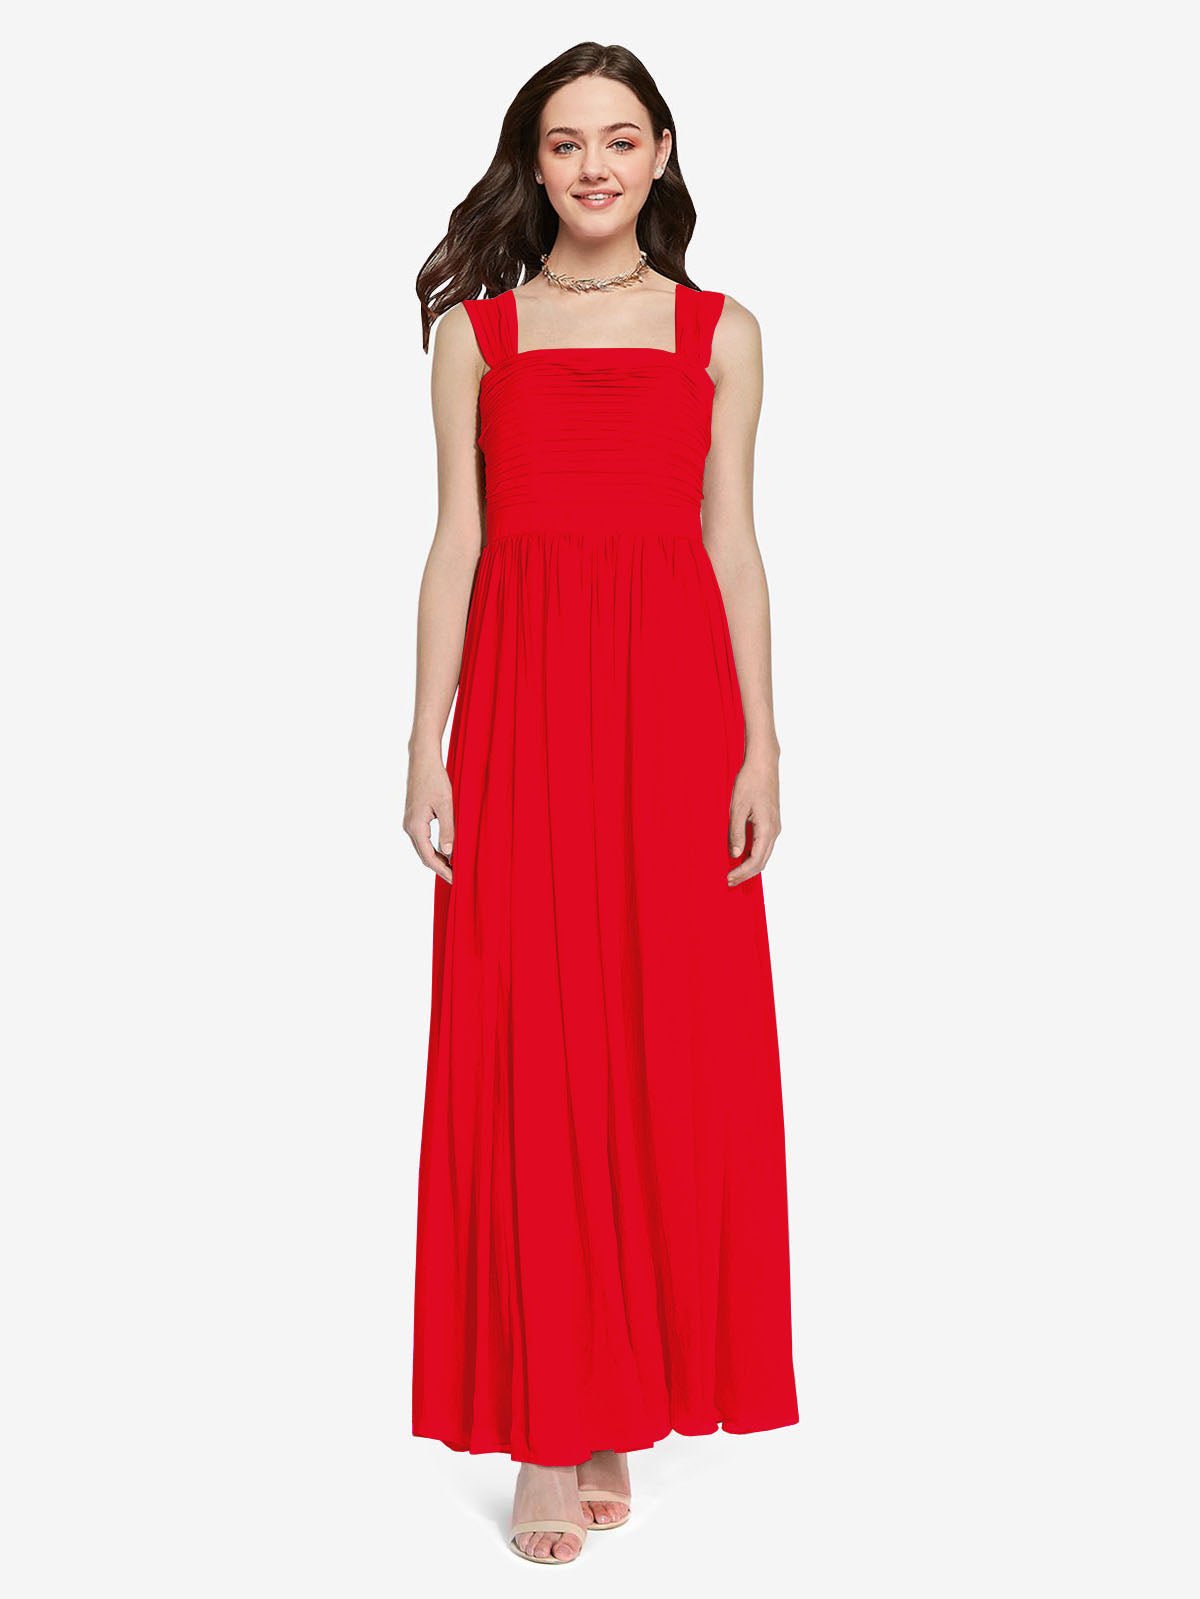 Long A-Line Square Sleeveless Red Chiffon Bridesmaid Dress Aldridge